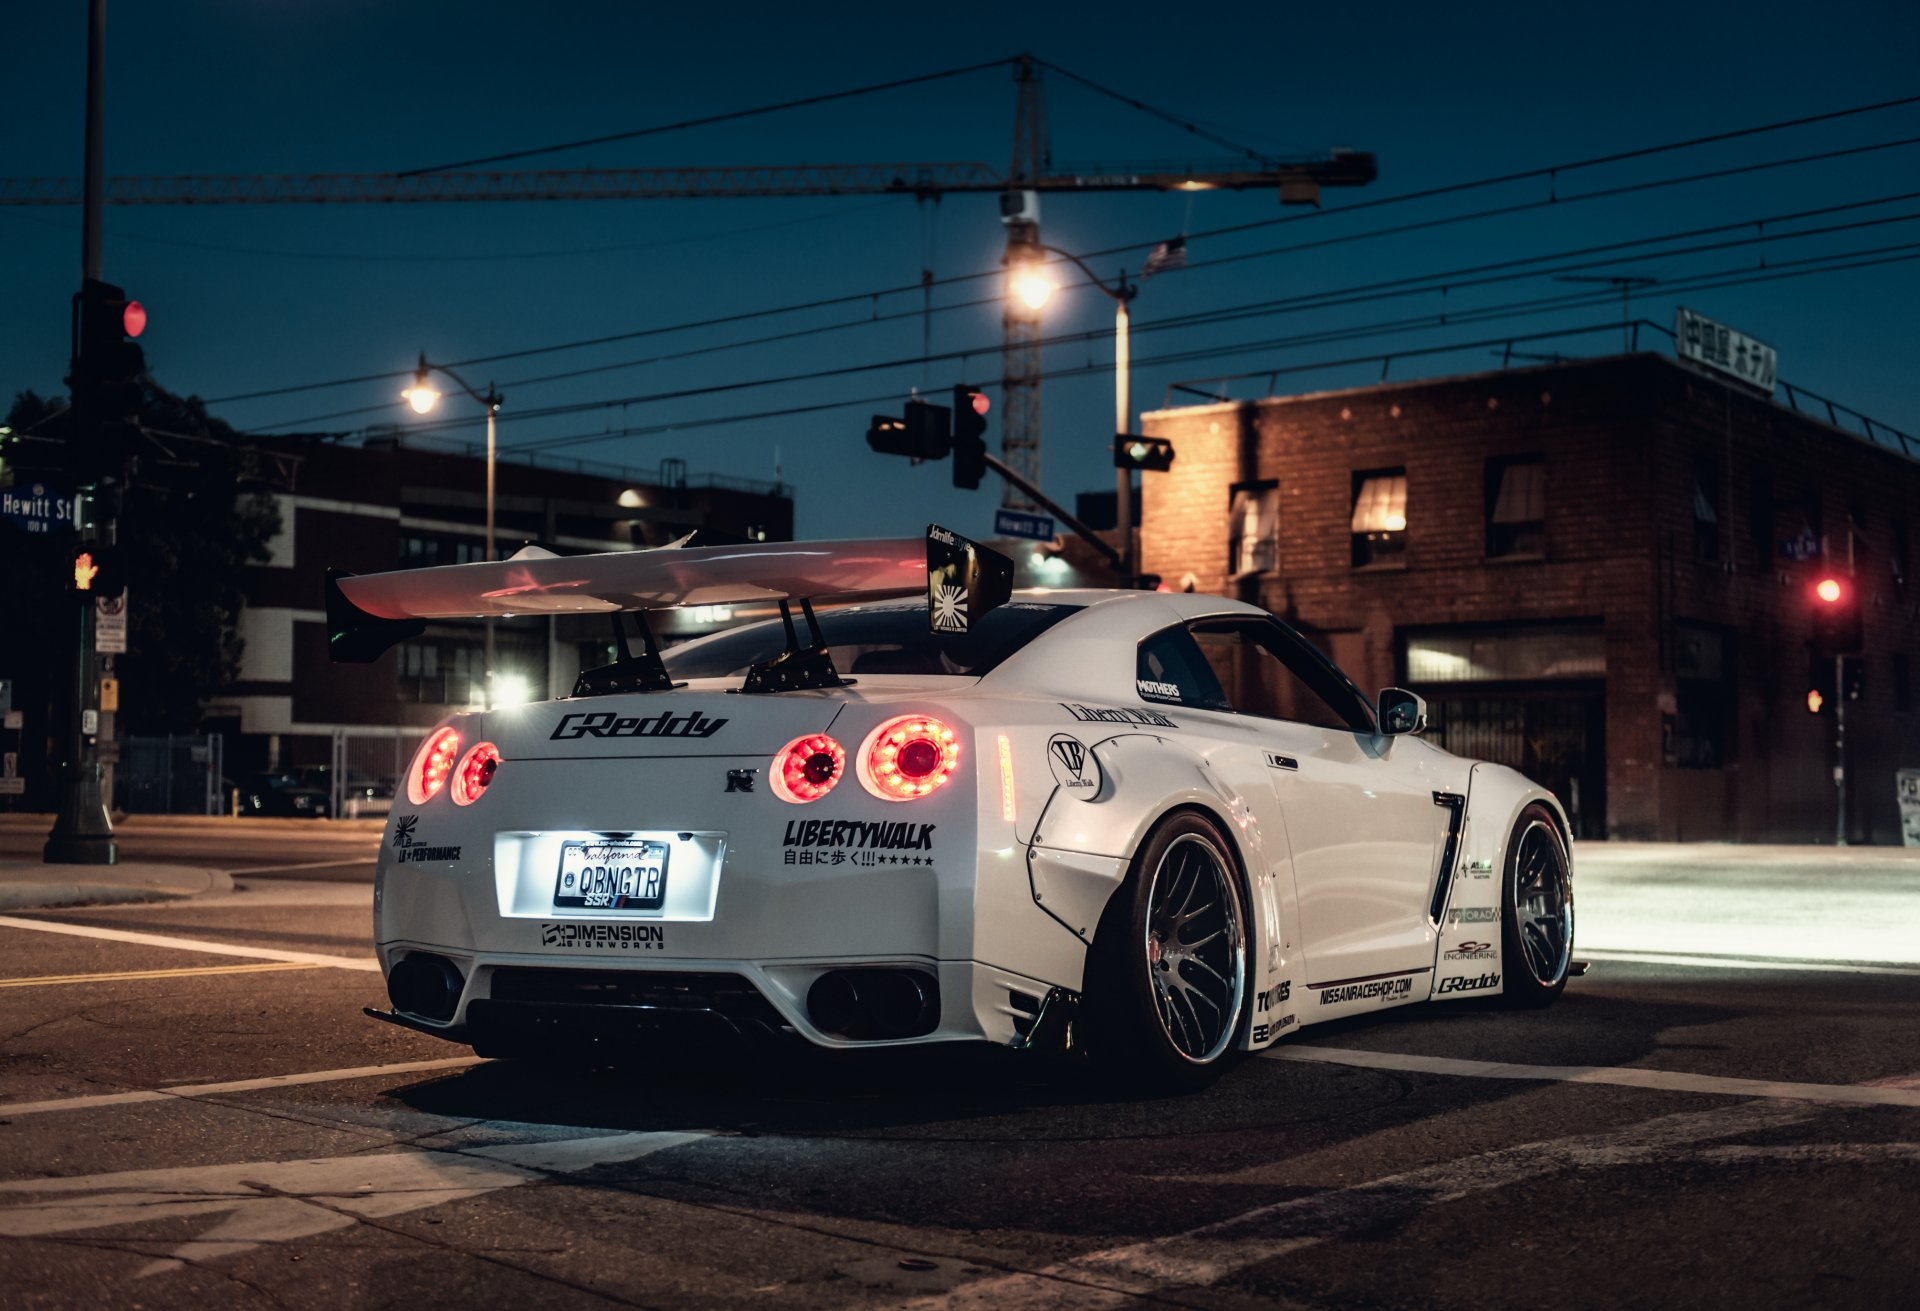 nissan gt-r tuning car hq wallpaper nissan avtooboi liberty walk